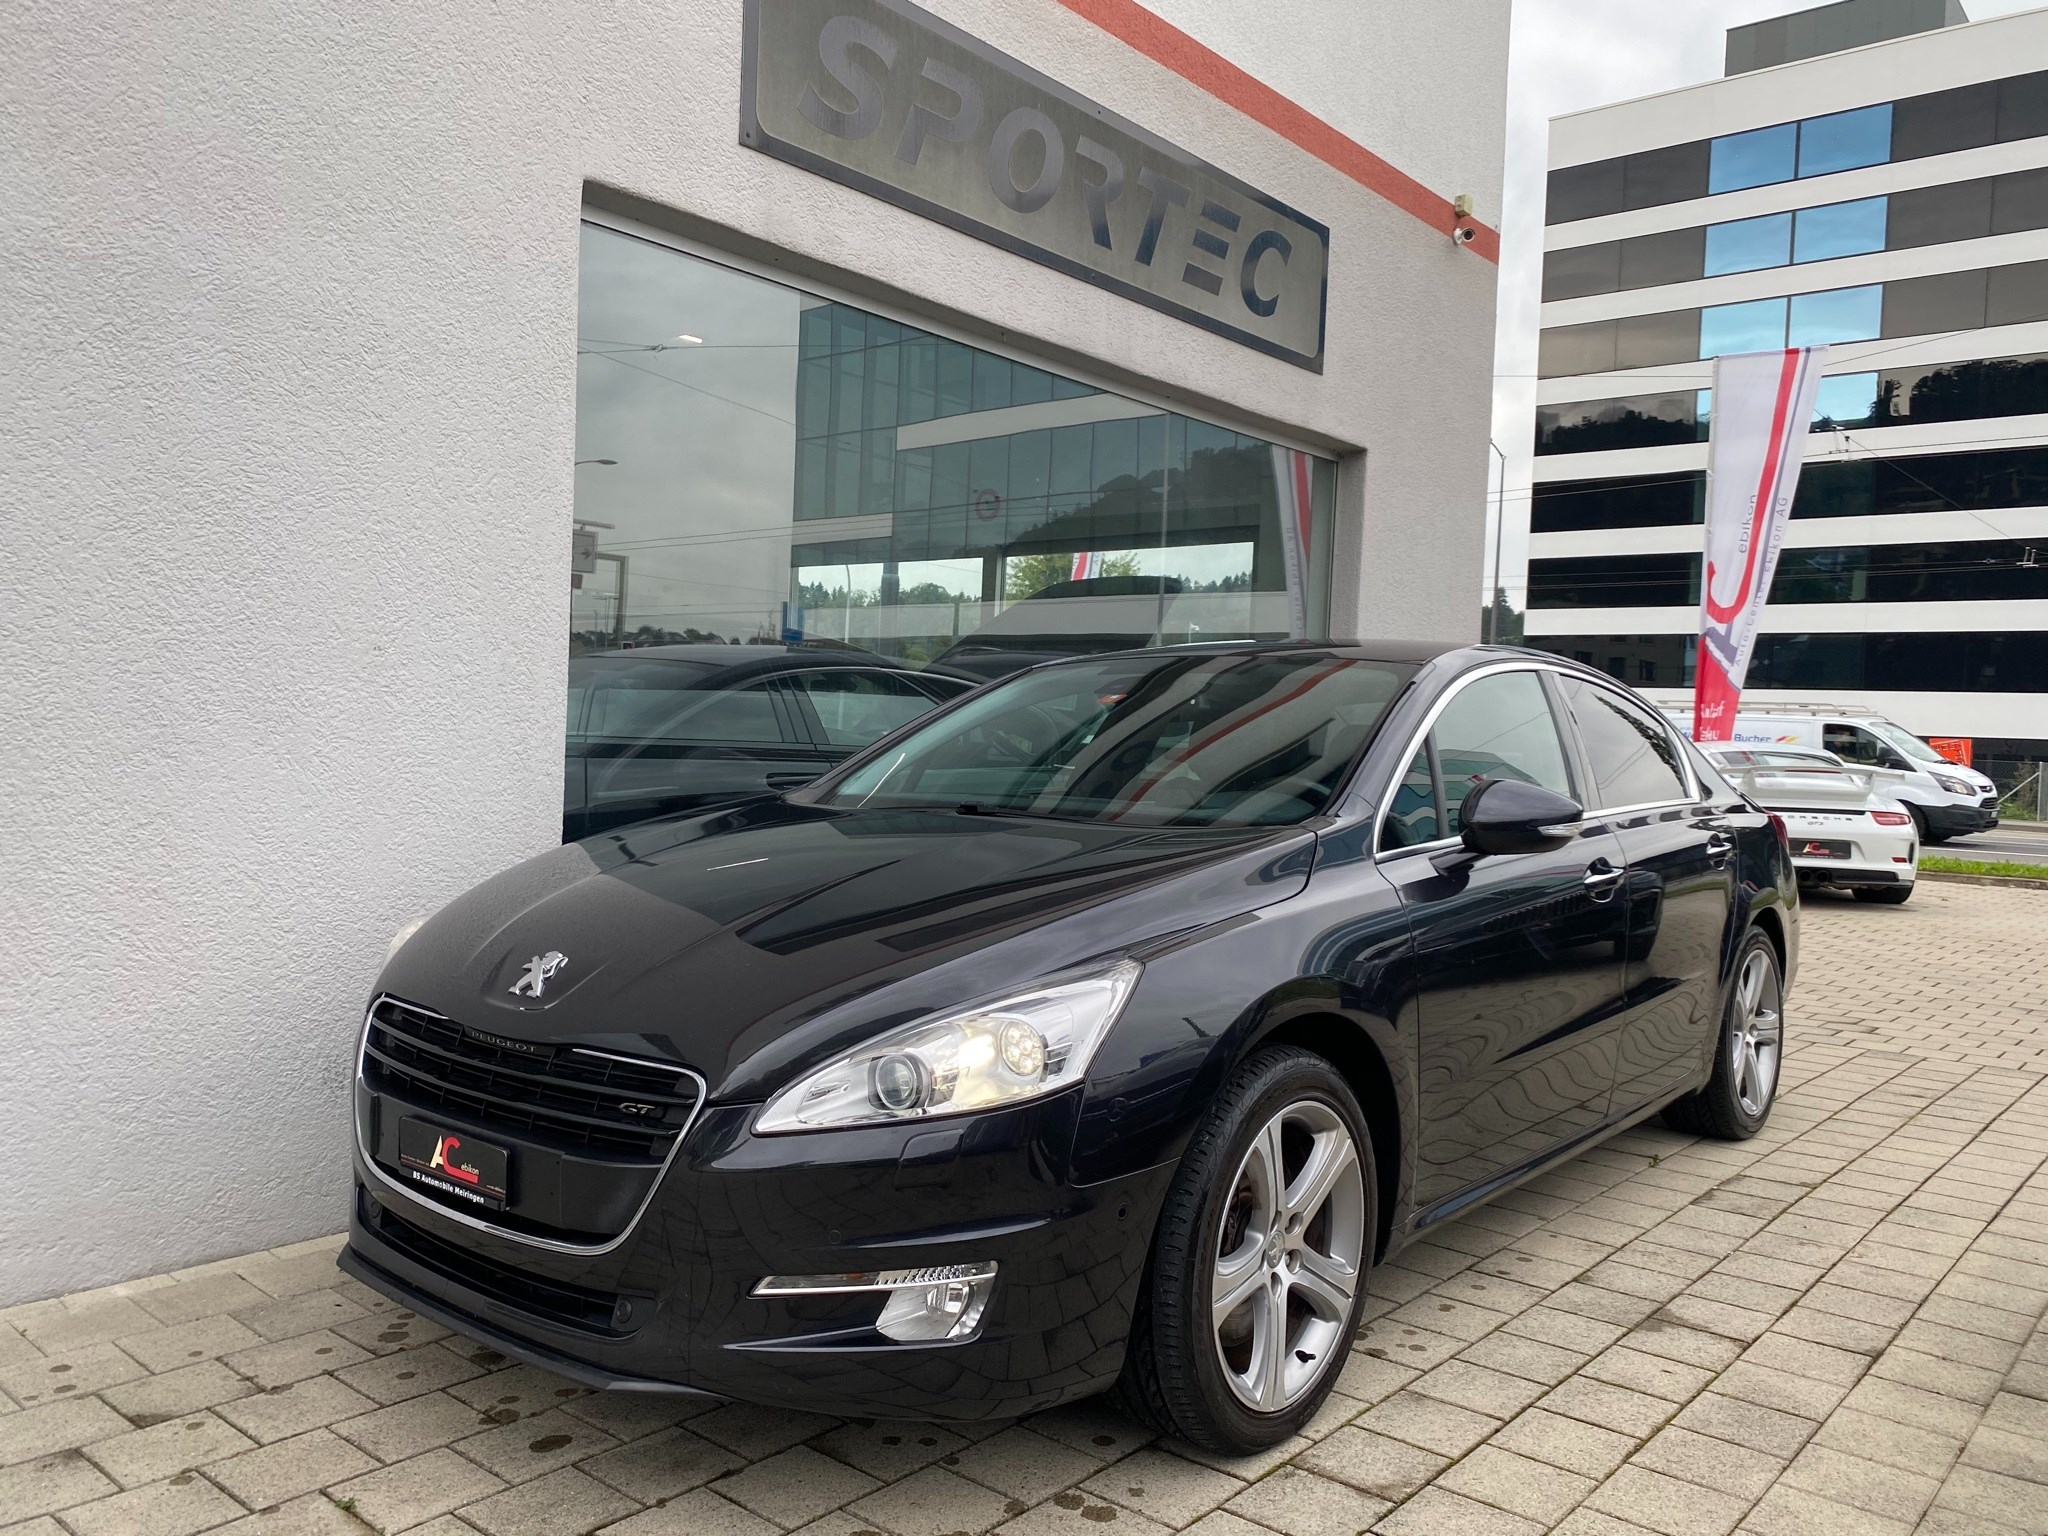 saloon Peugeot 508 2.2 HDI GT Automatic